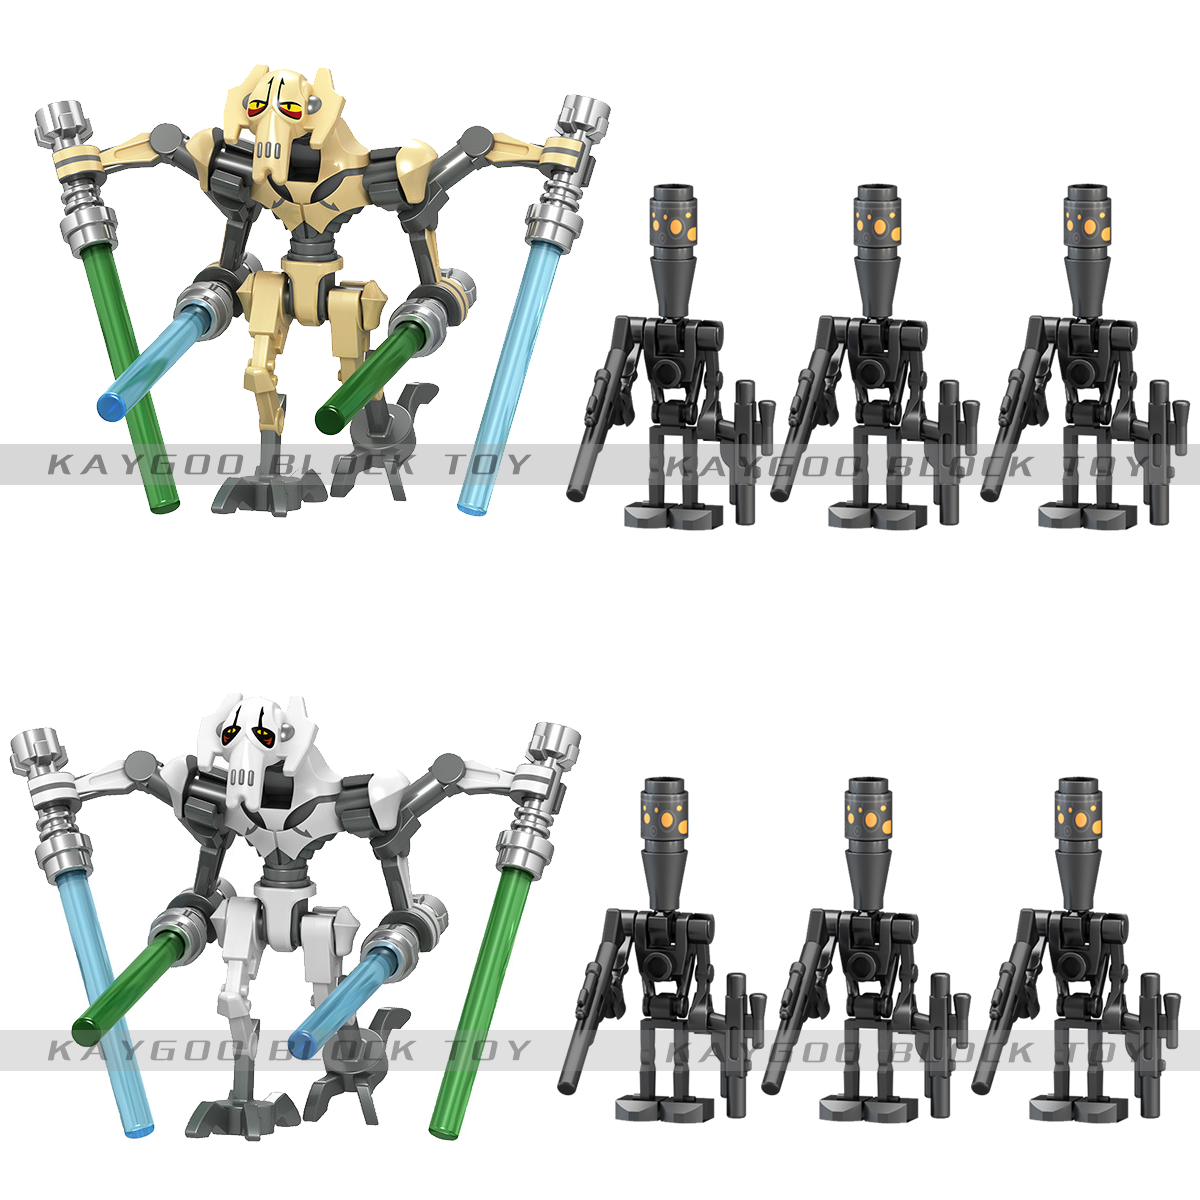 Single Sale Star Space Wars General Grievous Figures Models Building Blocks Brick Model Set Toys For Children Chrismas Gift